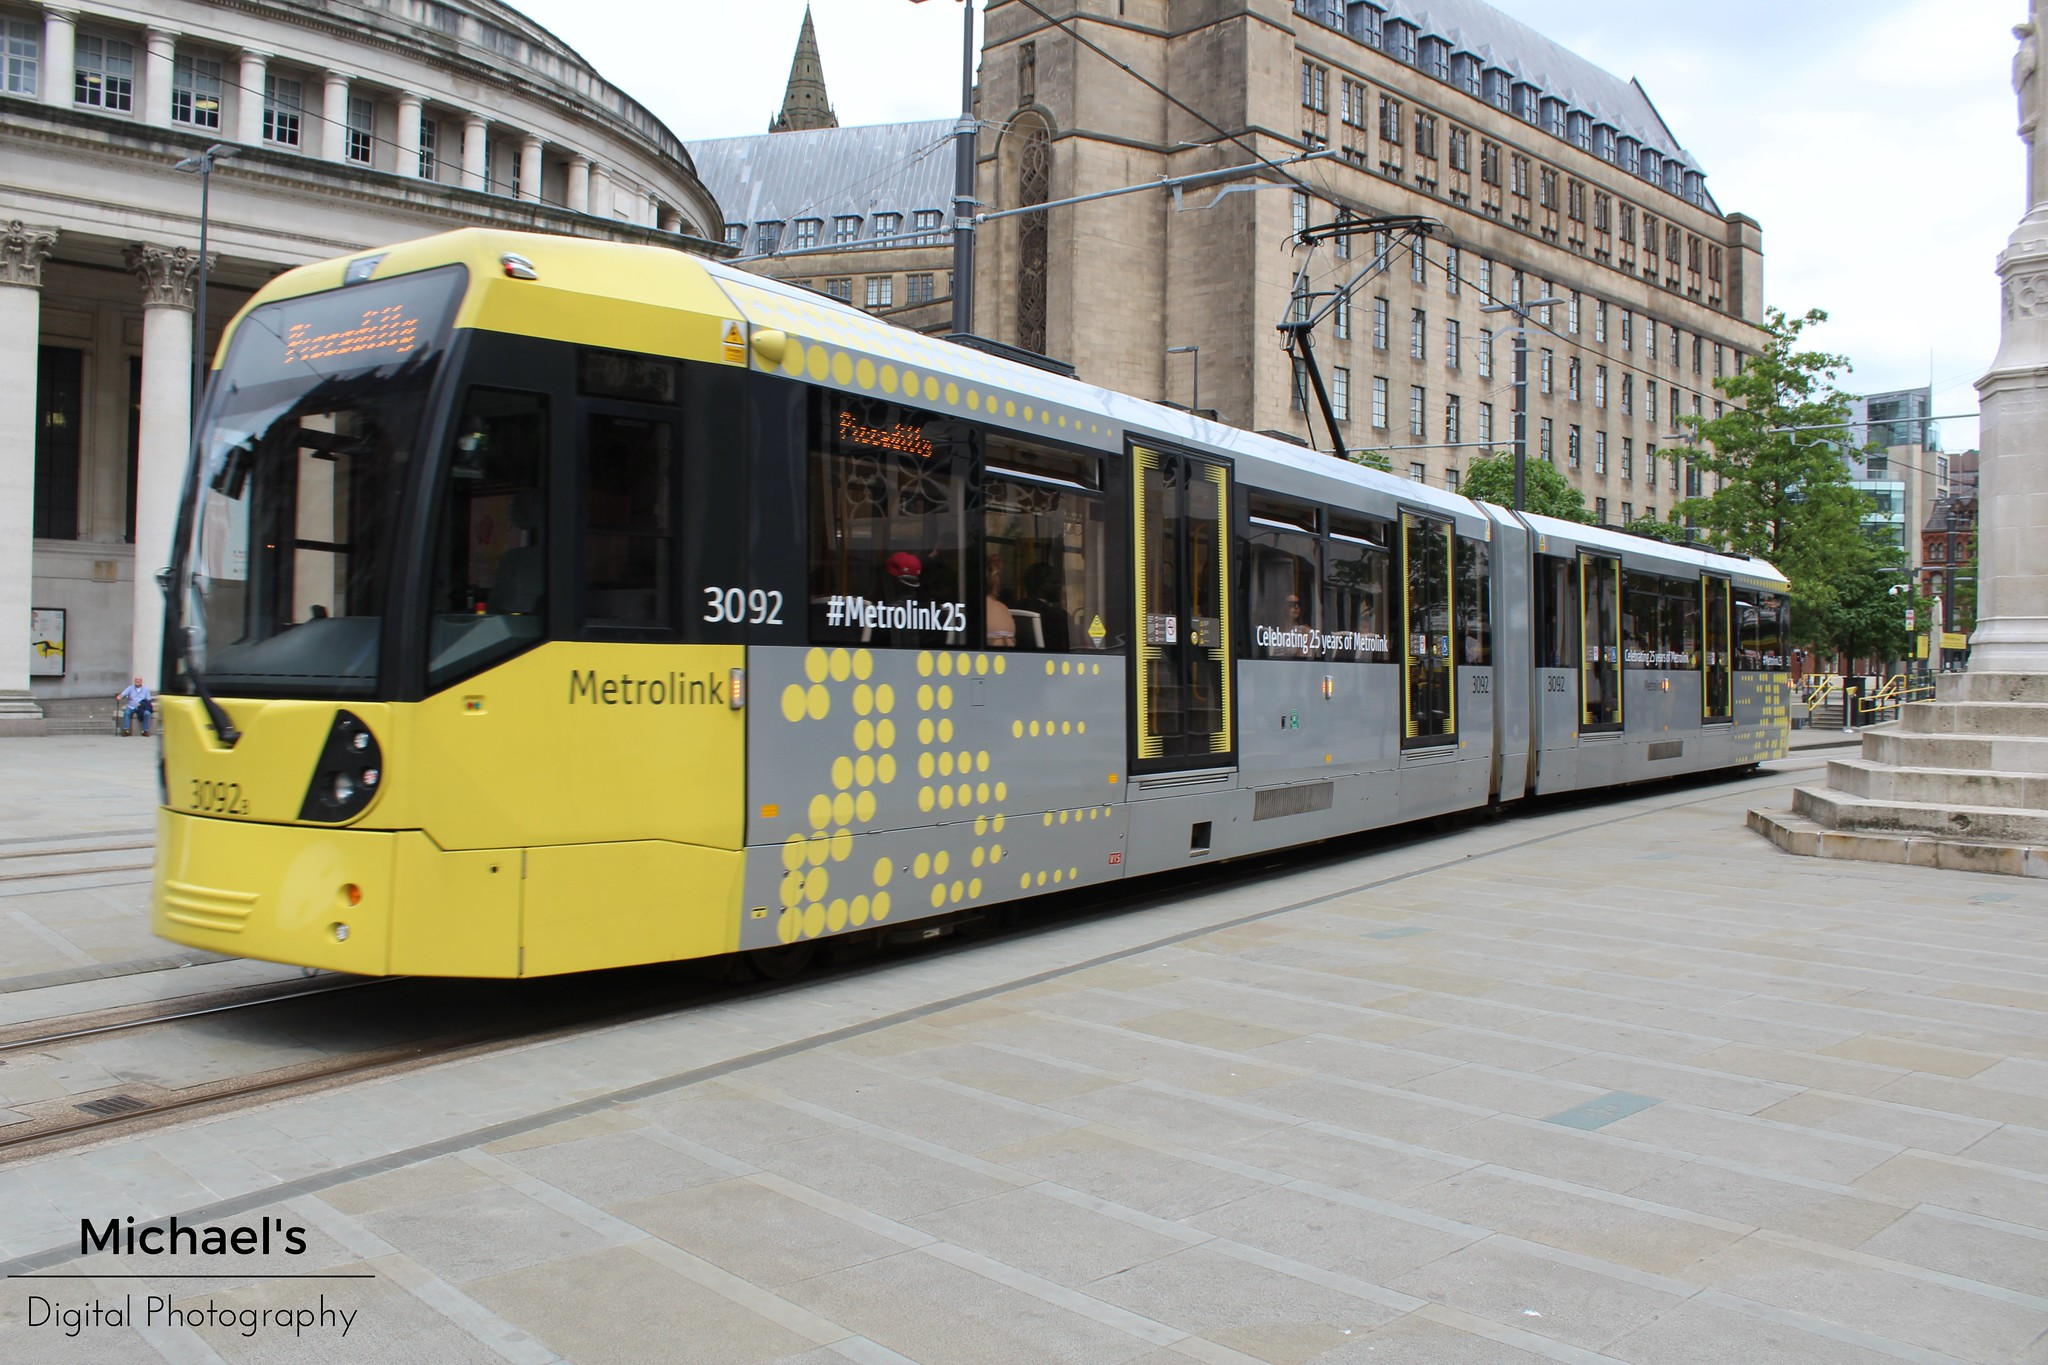 Metrolink tram with 25th anniversary livery